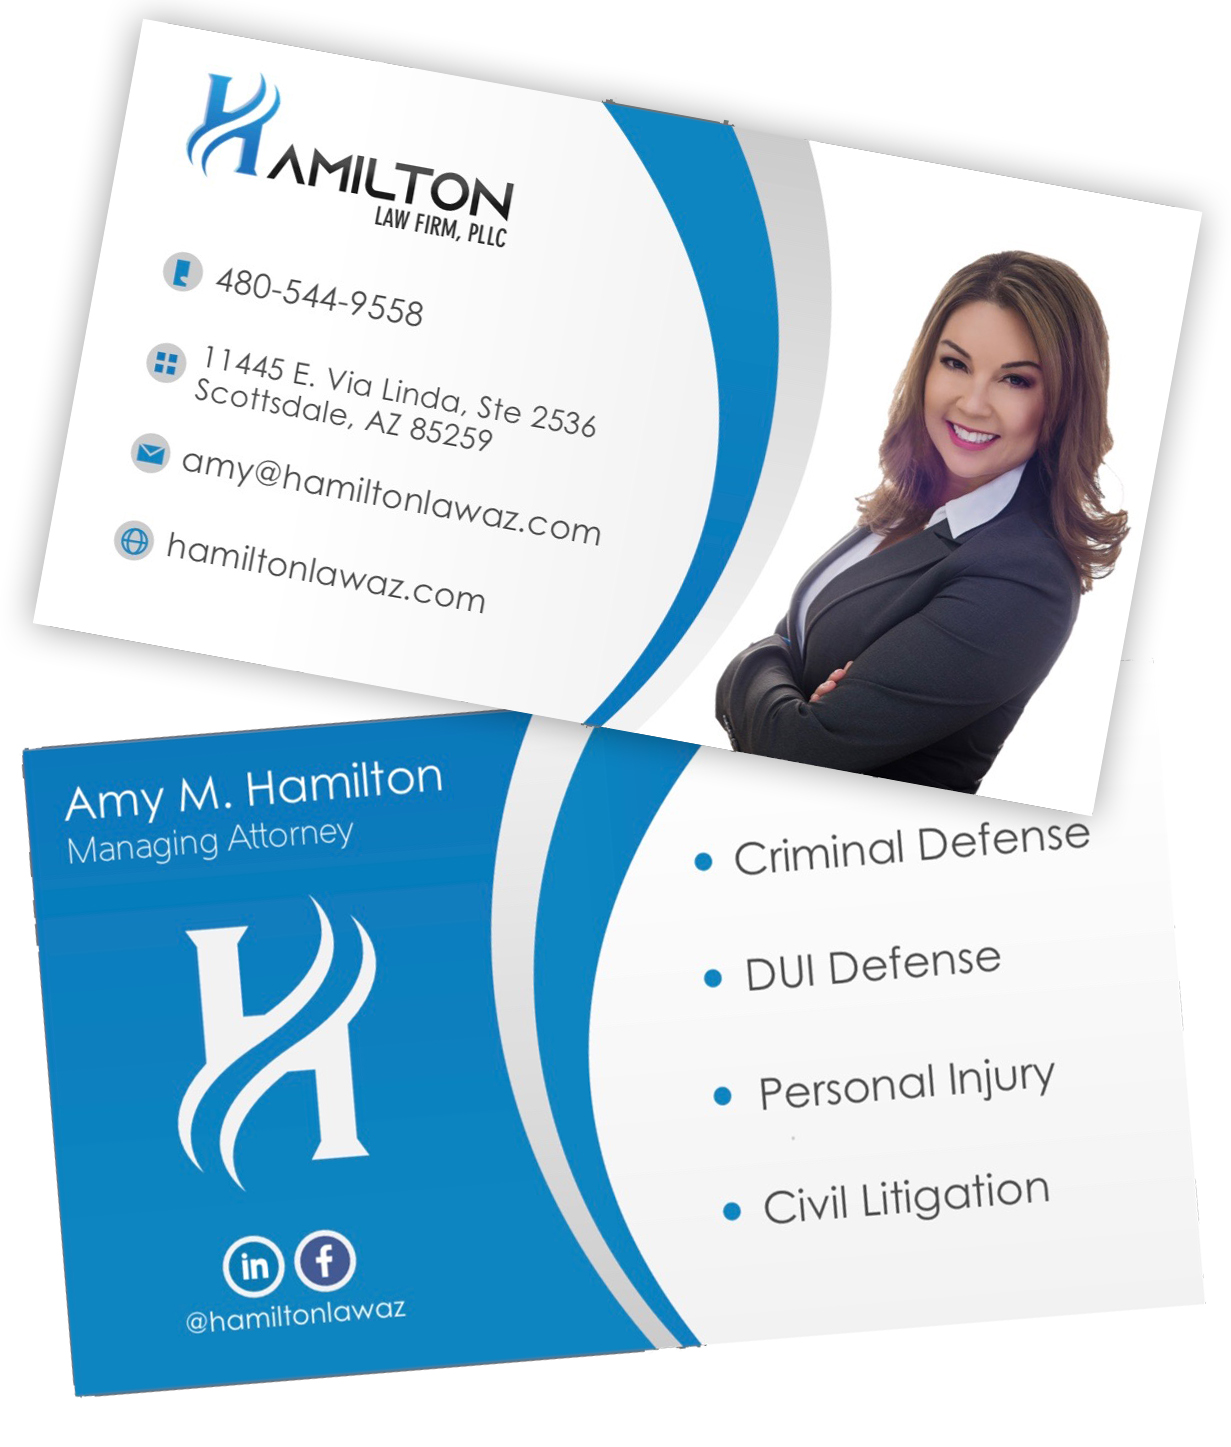 - Check out Amy's business cards!